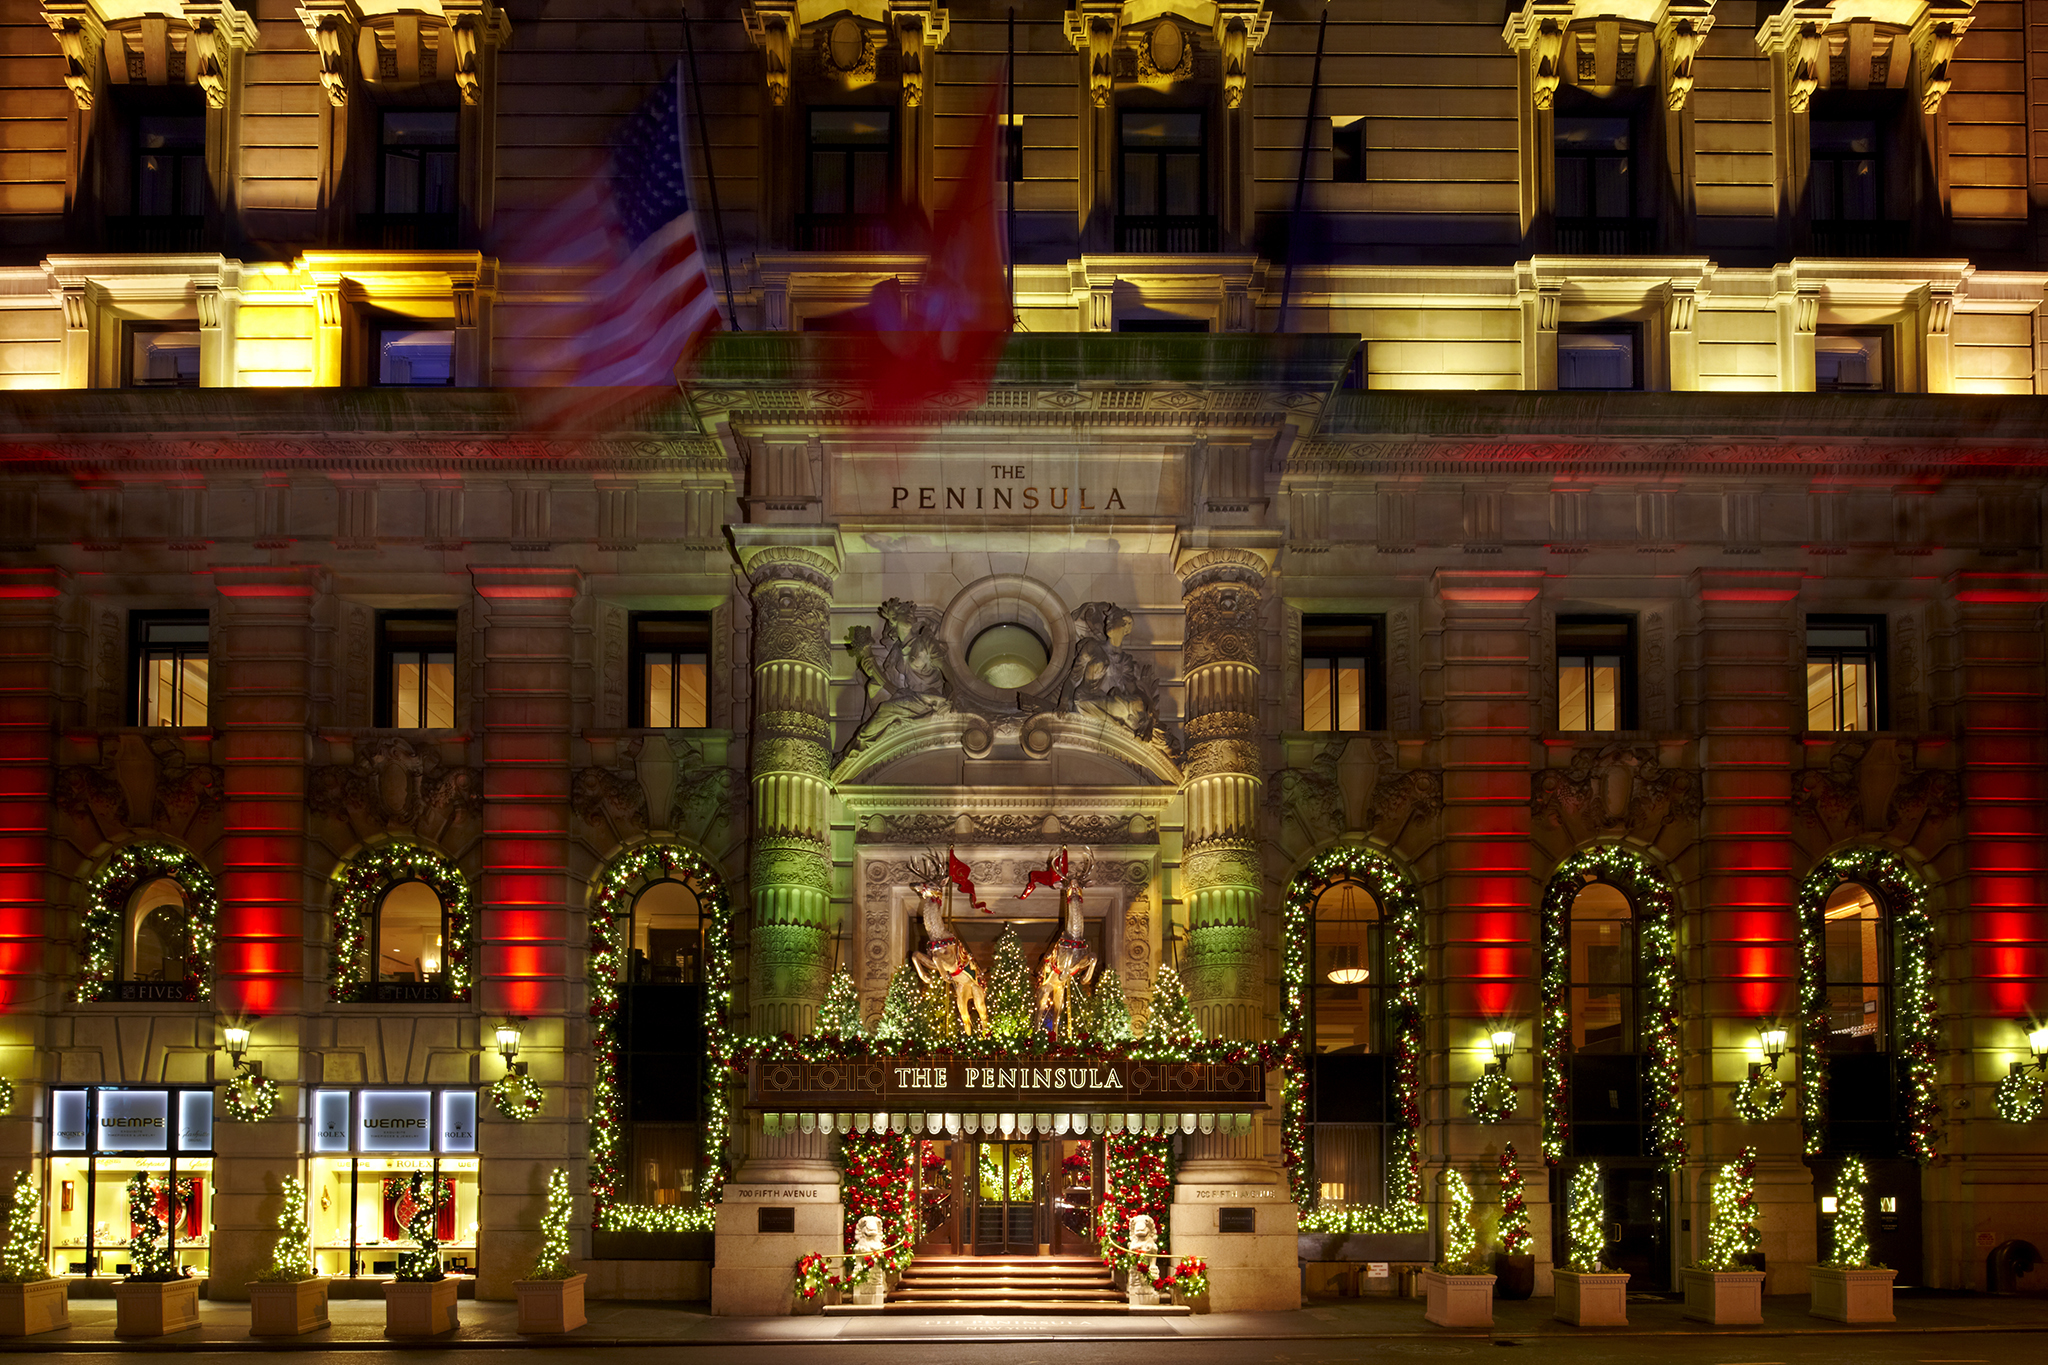 peninsula hotel - New York Christmas Decorations